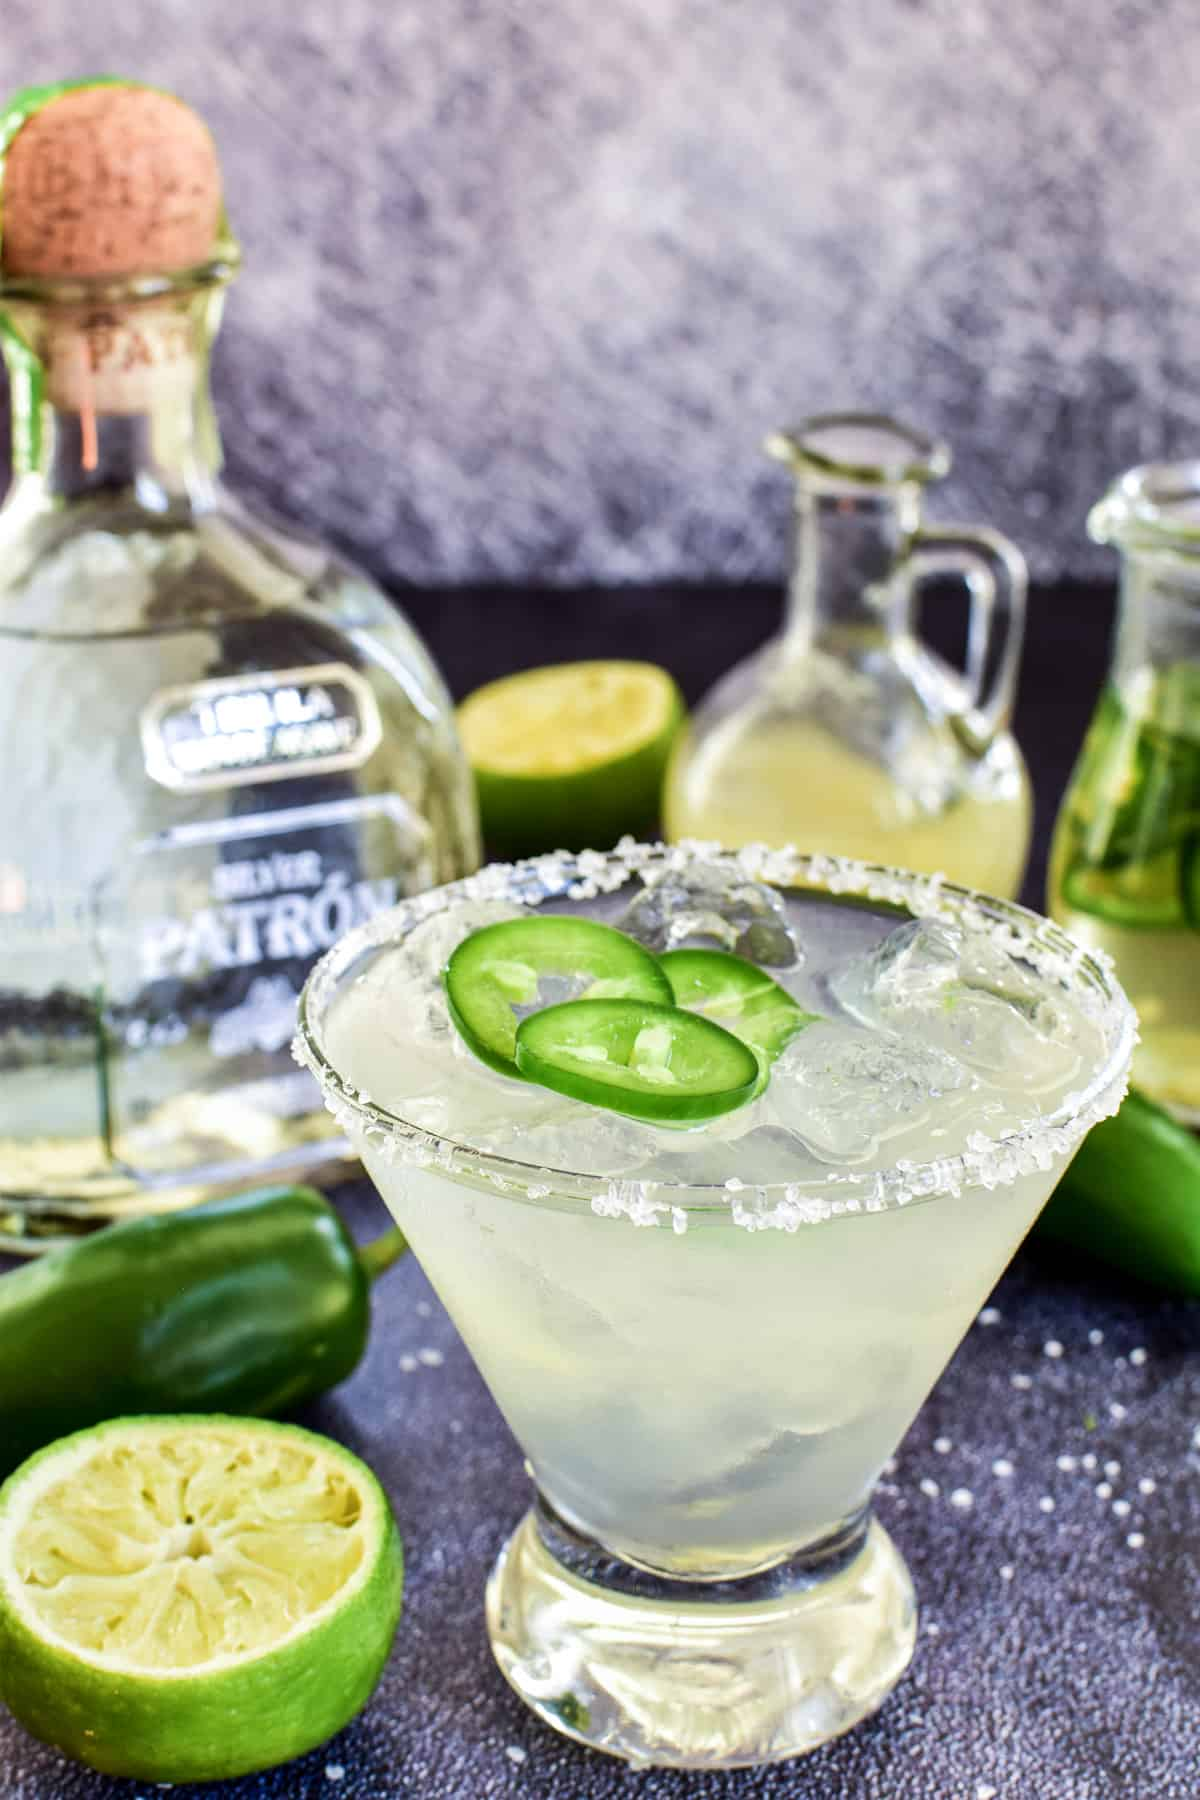 Jalapeño Margarita with limes, jalapeños, and a bottle of Patron